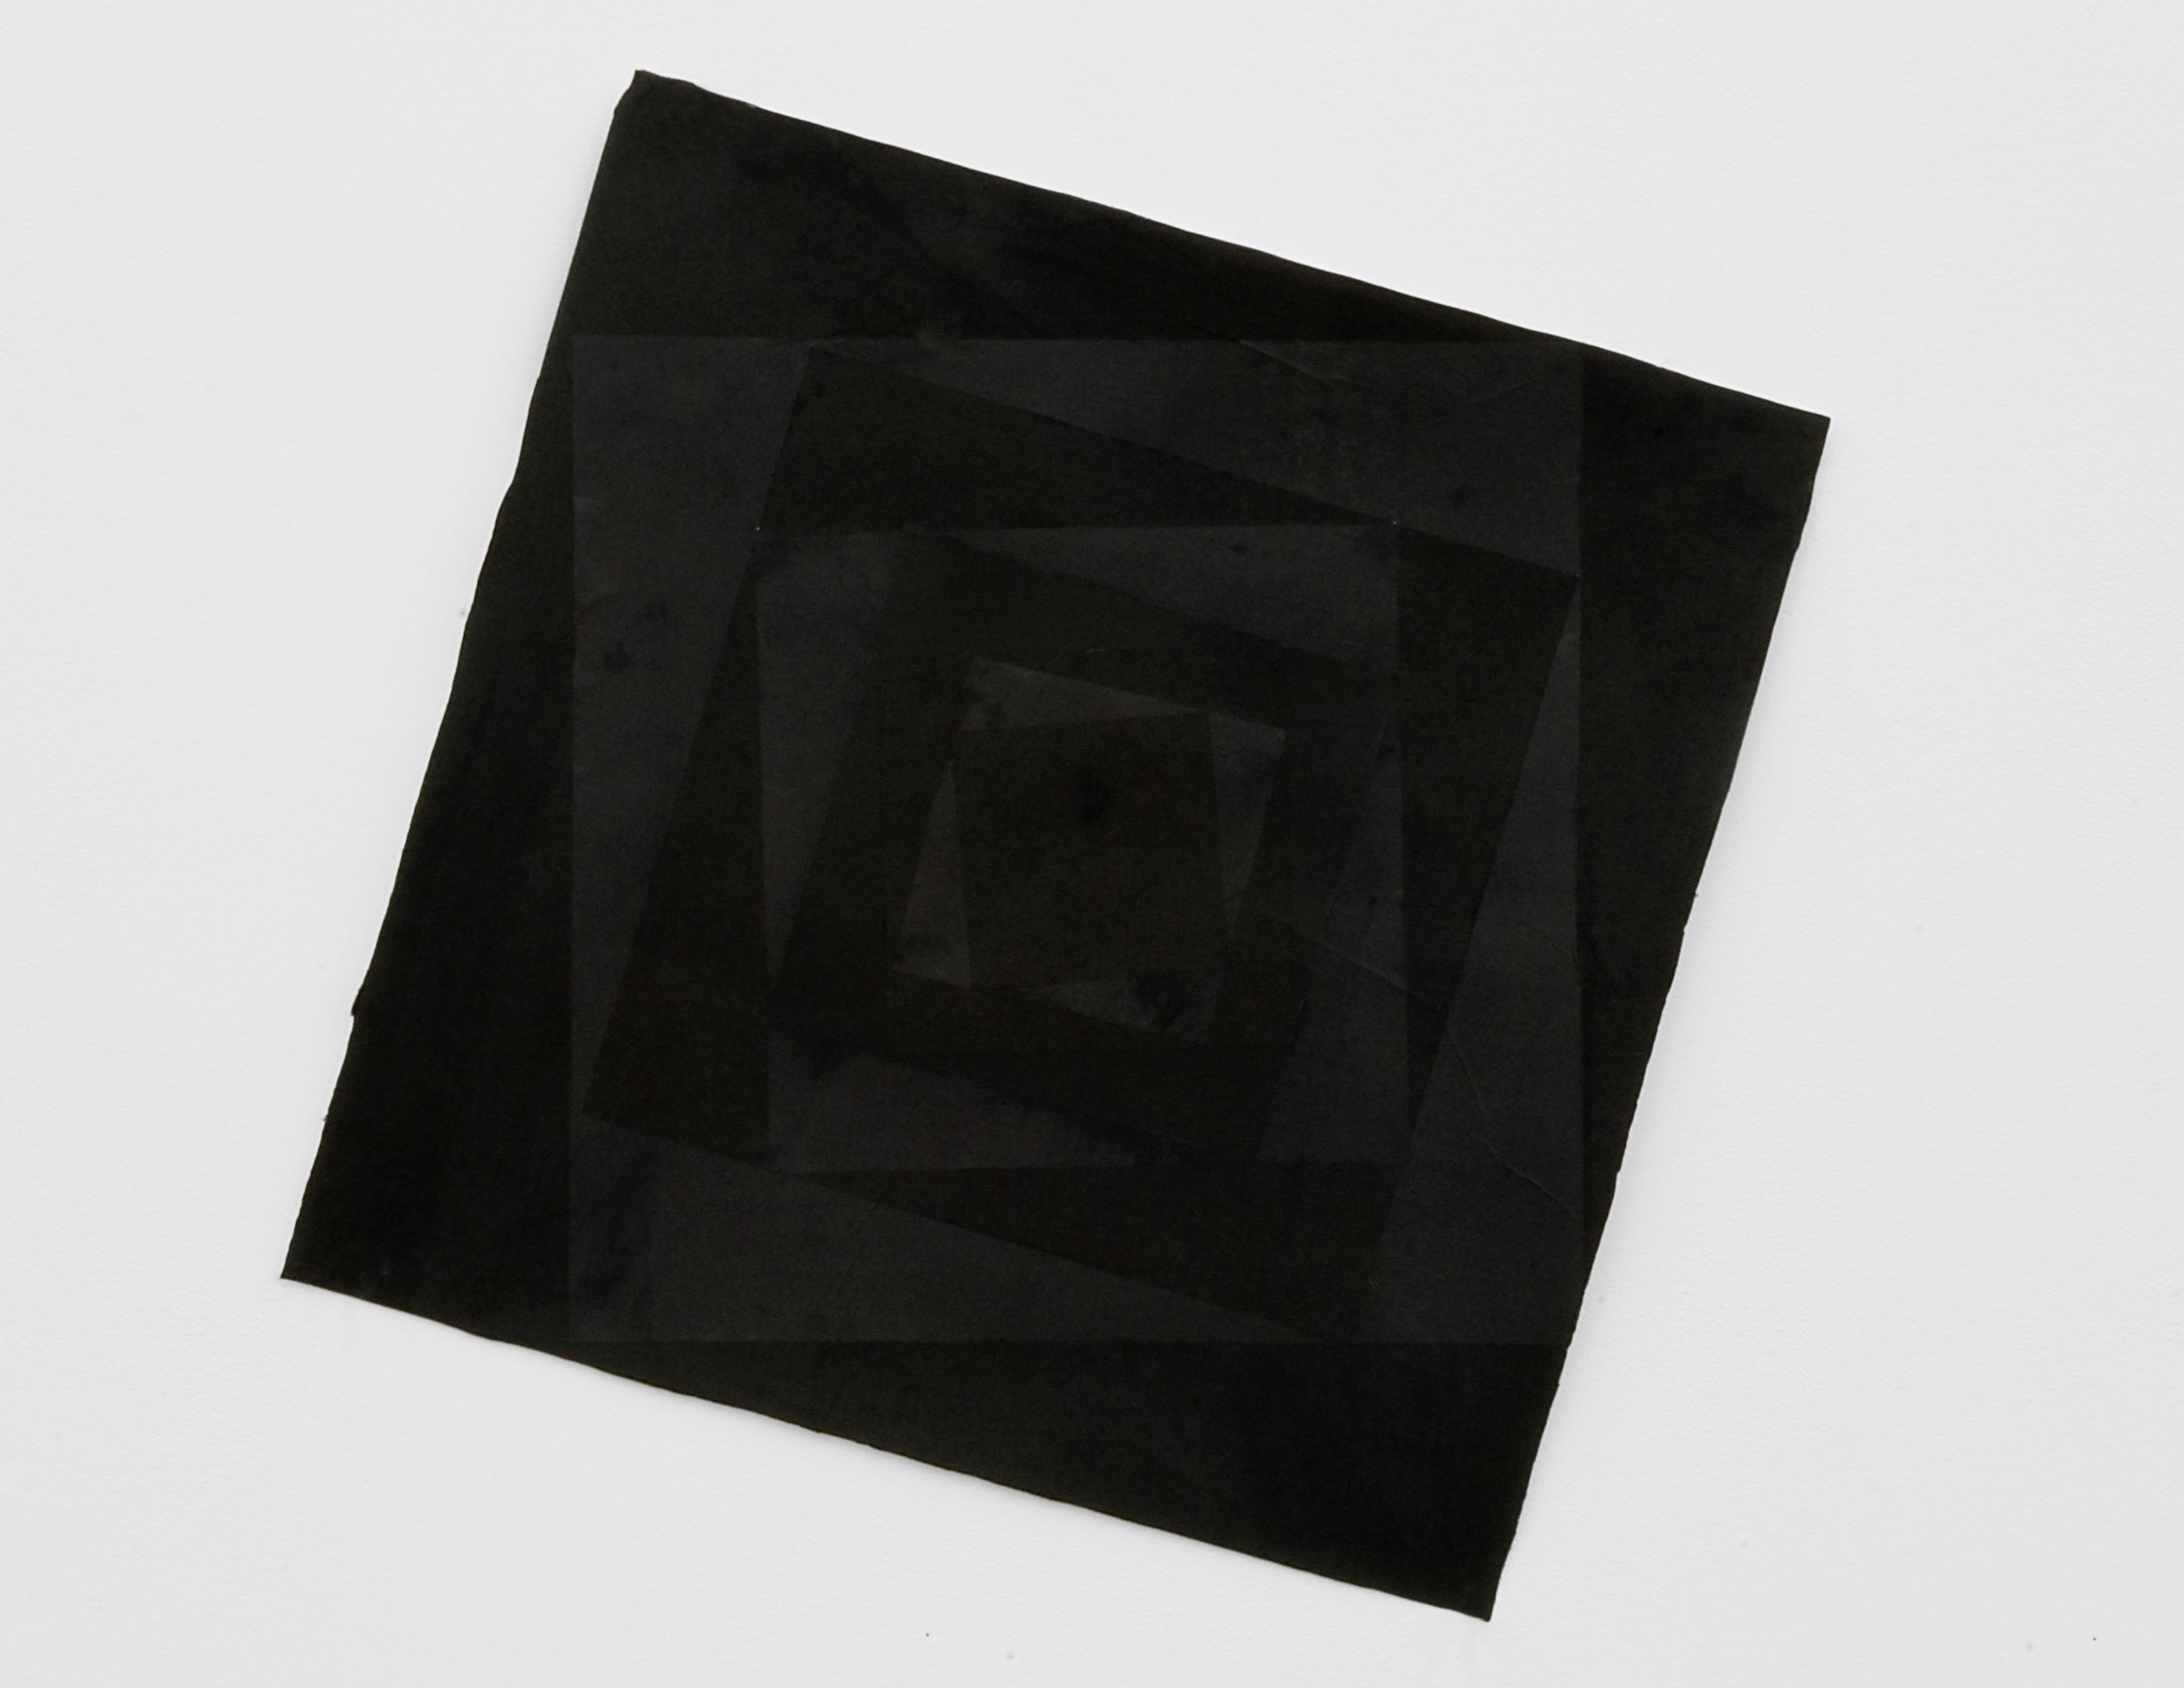 Black on Black Squares, 2008 collage on paper 60,5 x 60,5 cm - 23 3/4 x 23 3/4 inches